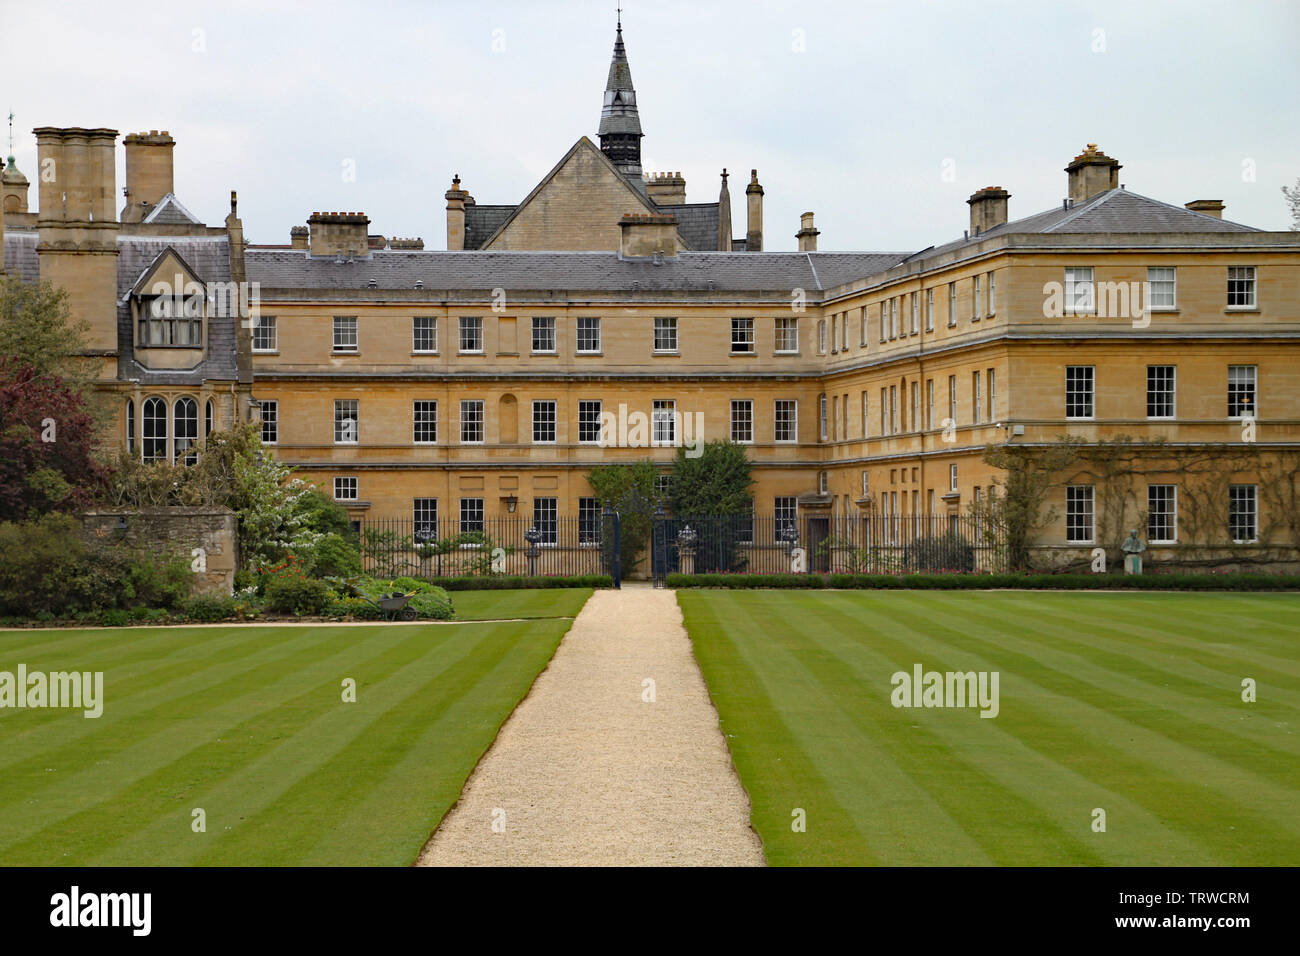 The well manicured lawns at Trinity College in Oxford - Stock Image